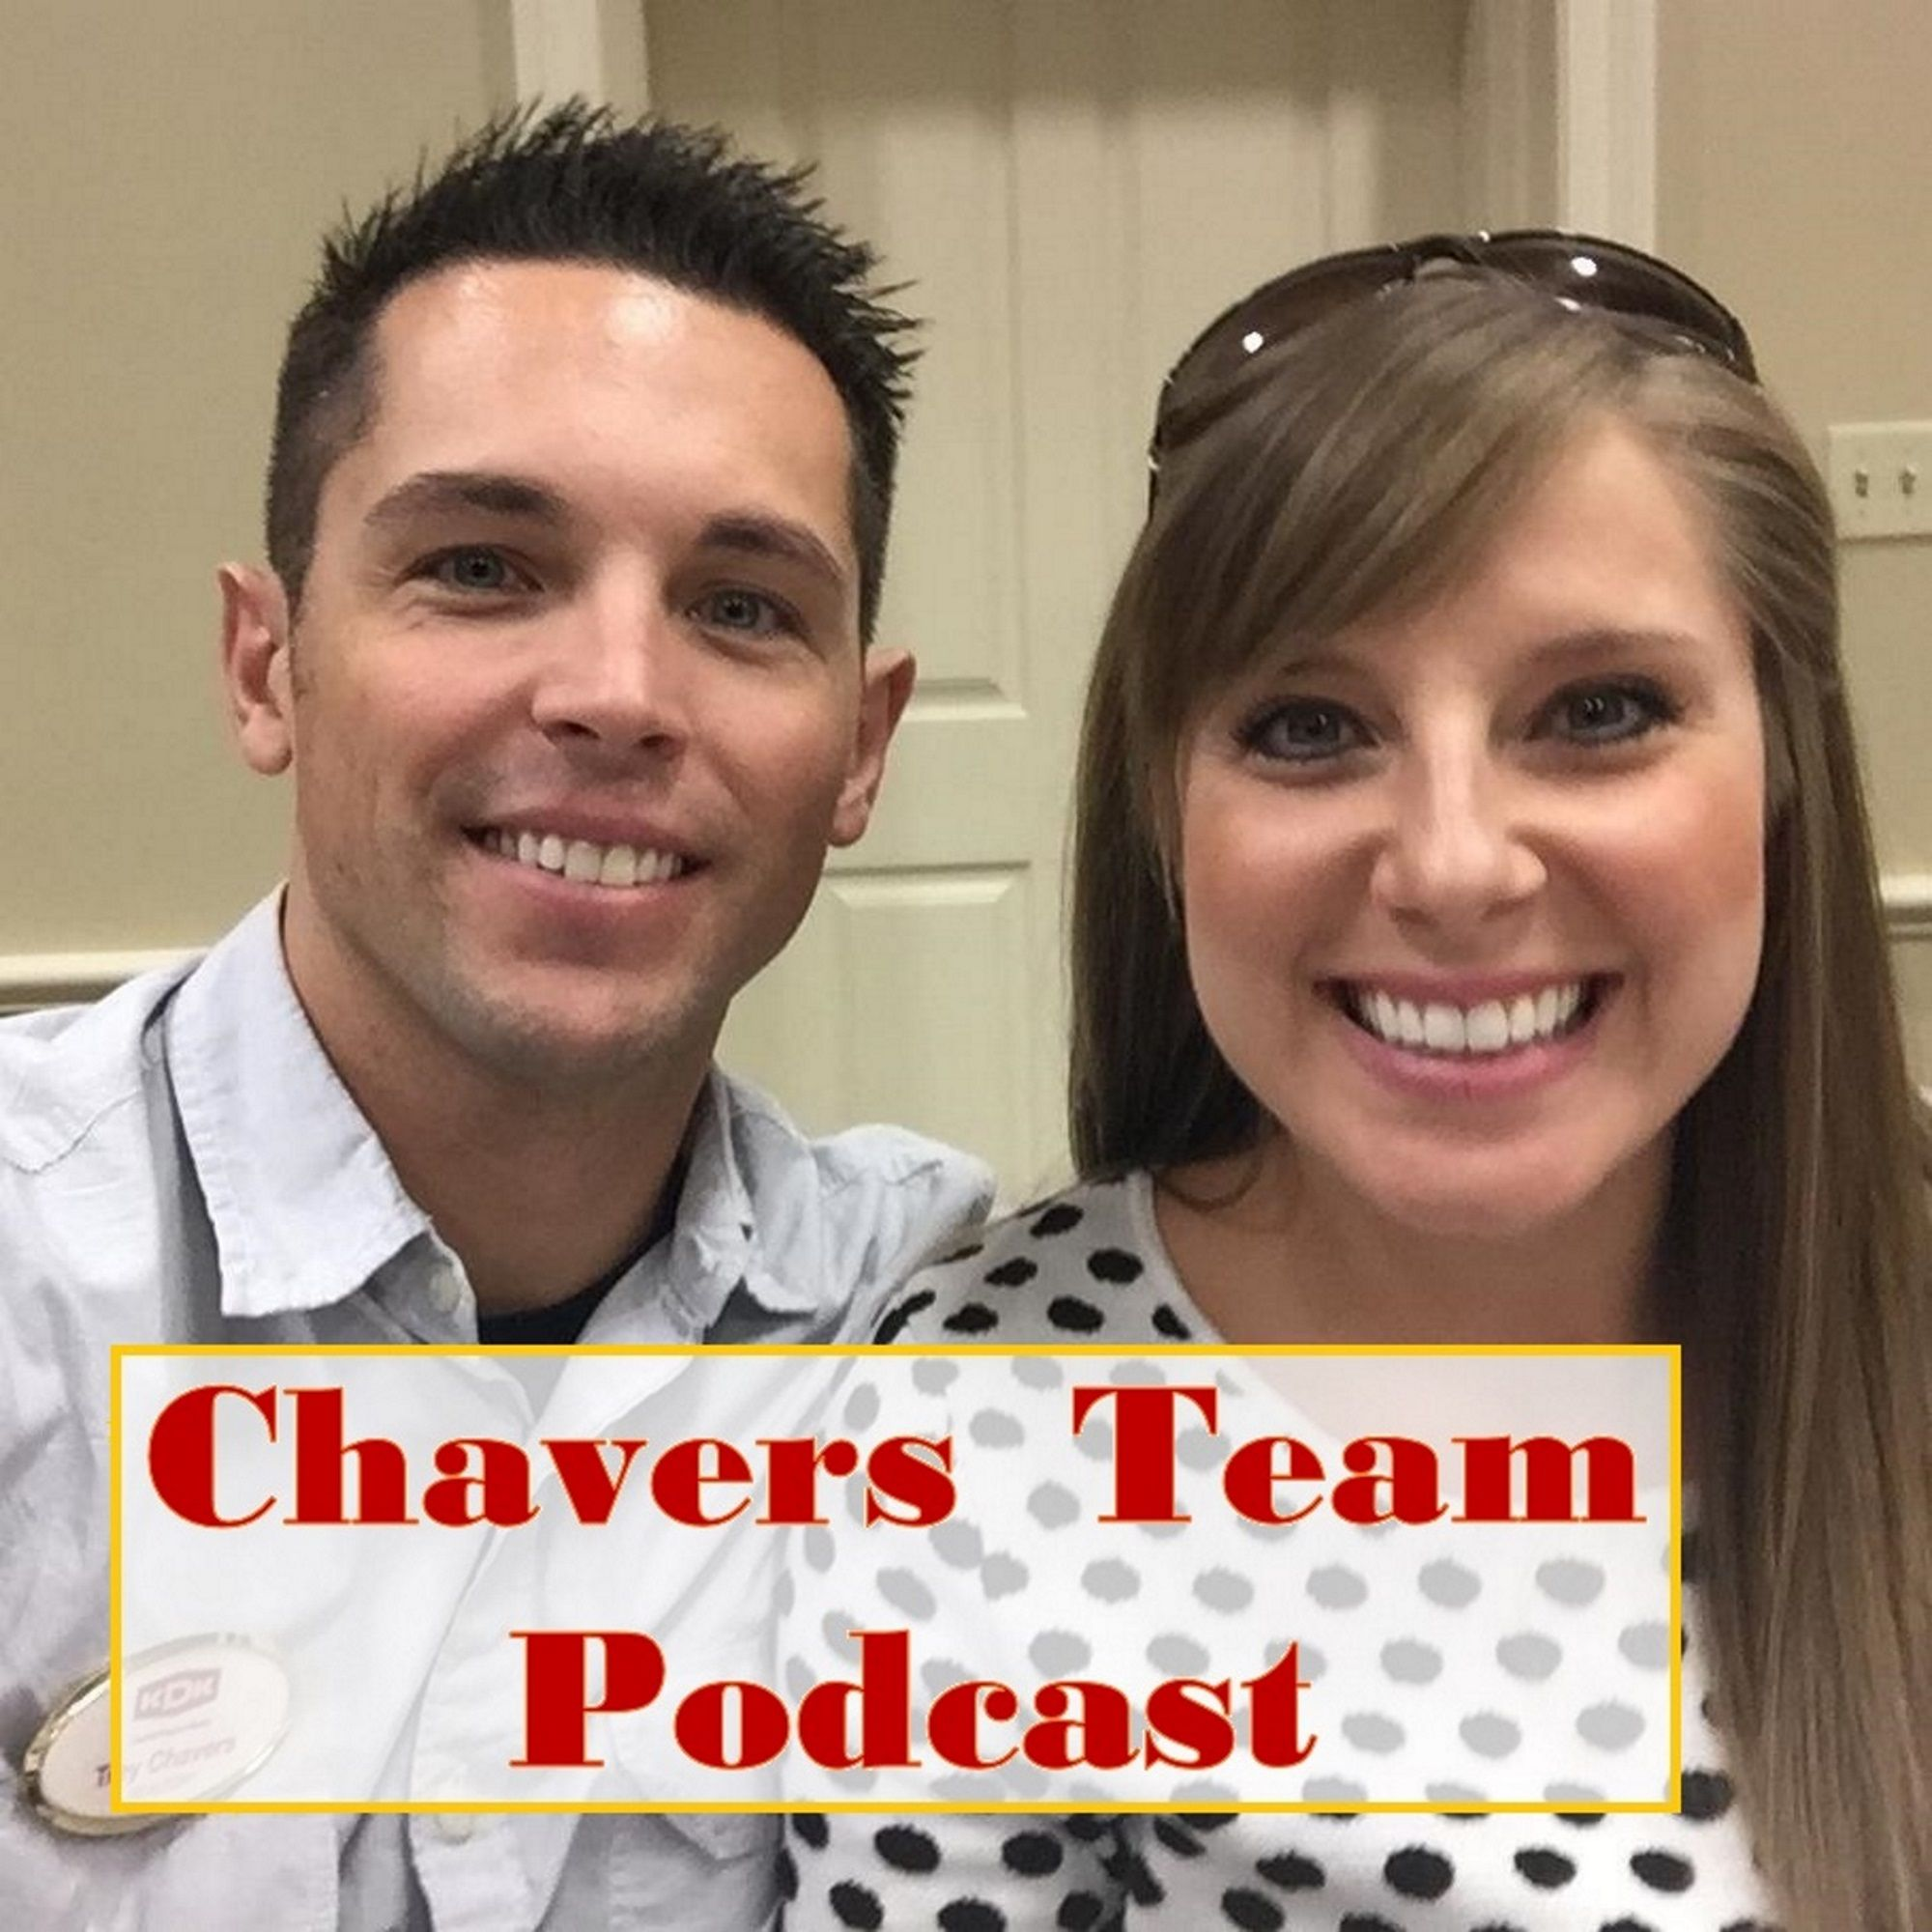 Chavers Team Podcast